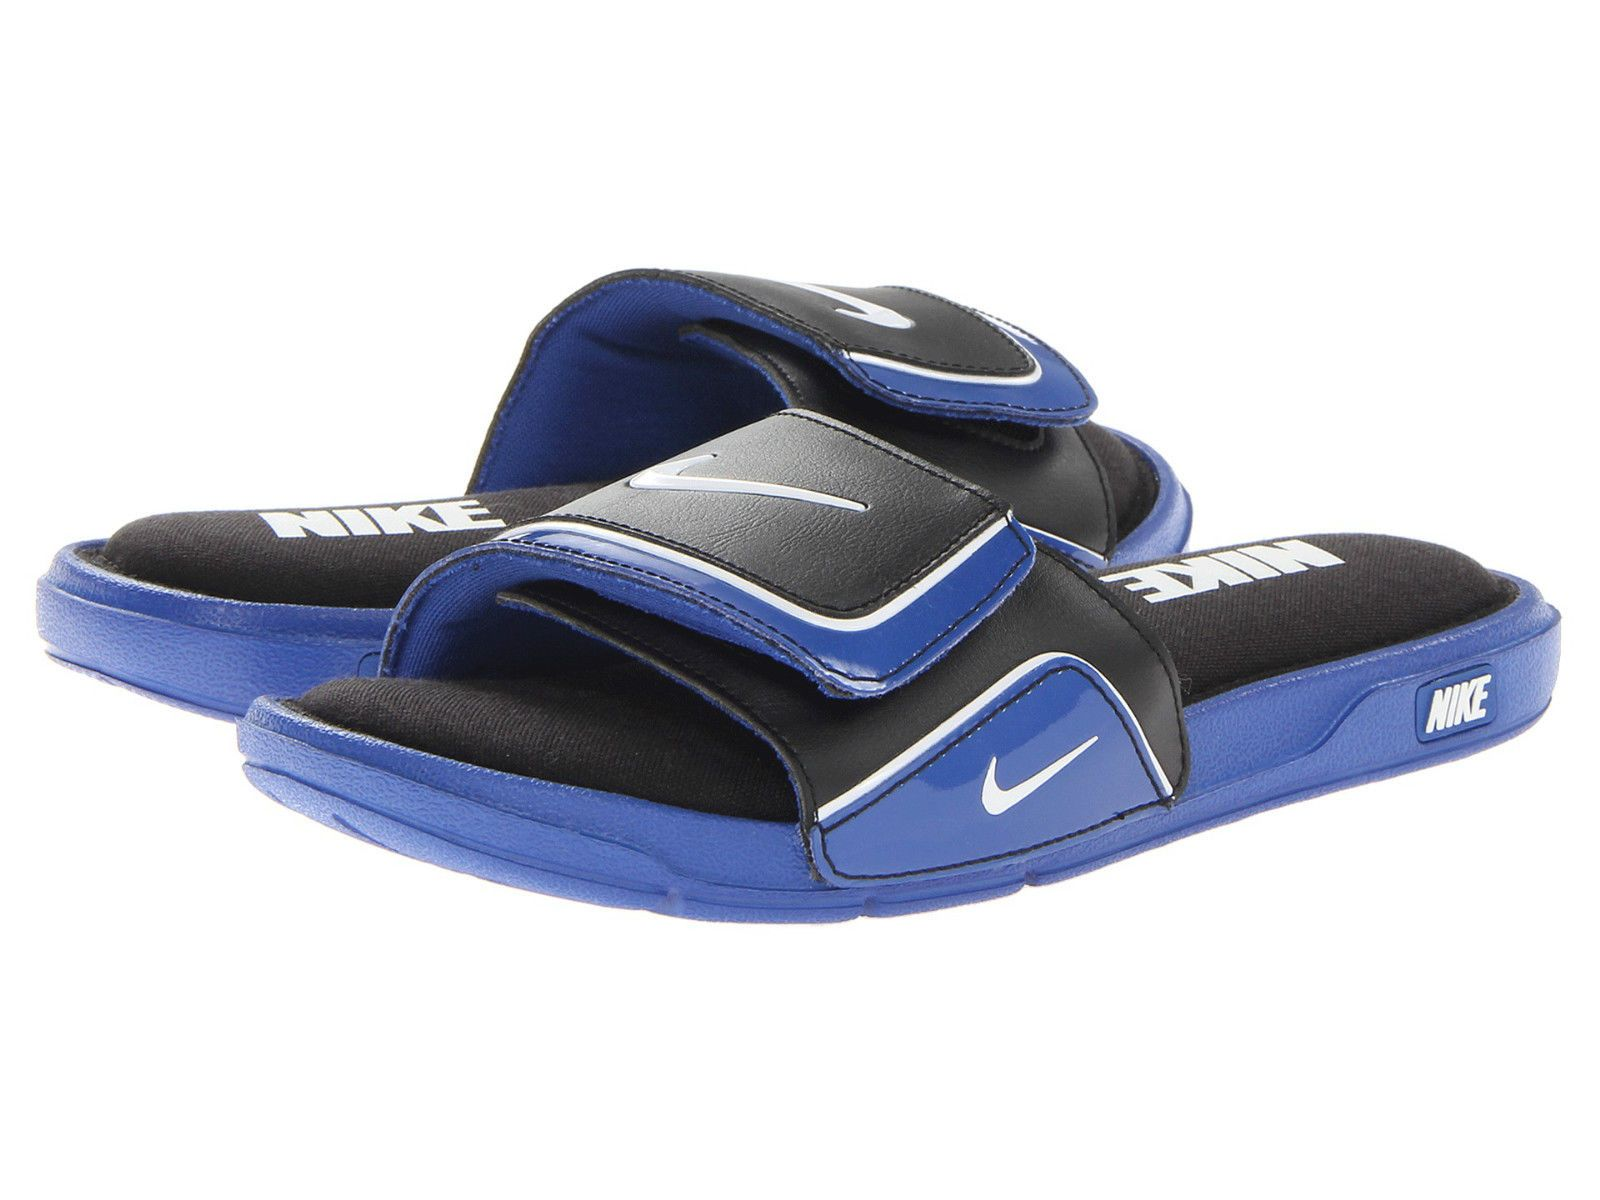 6c66b2de69f2 New Men s Nike Comfort Slide 2 - Game Royal Black White - Size - 7 ...